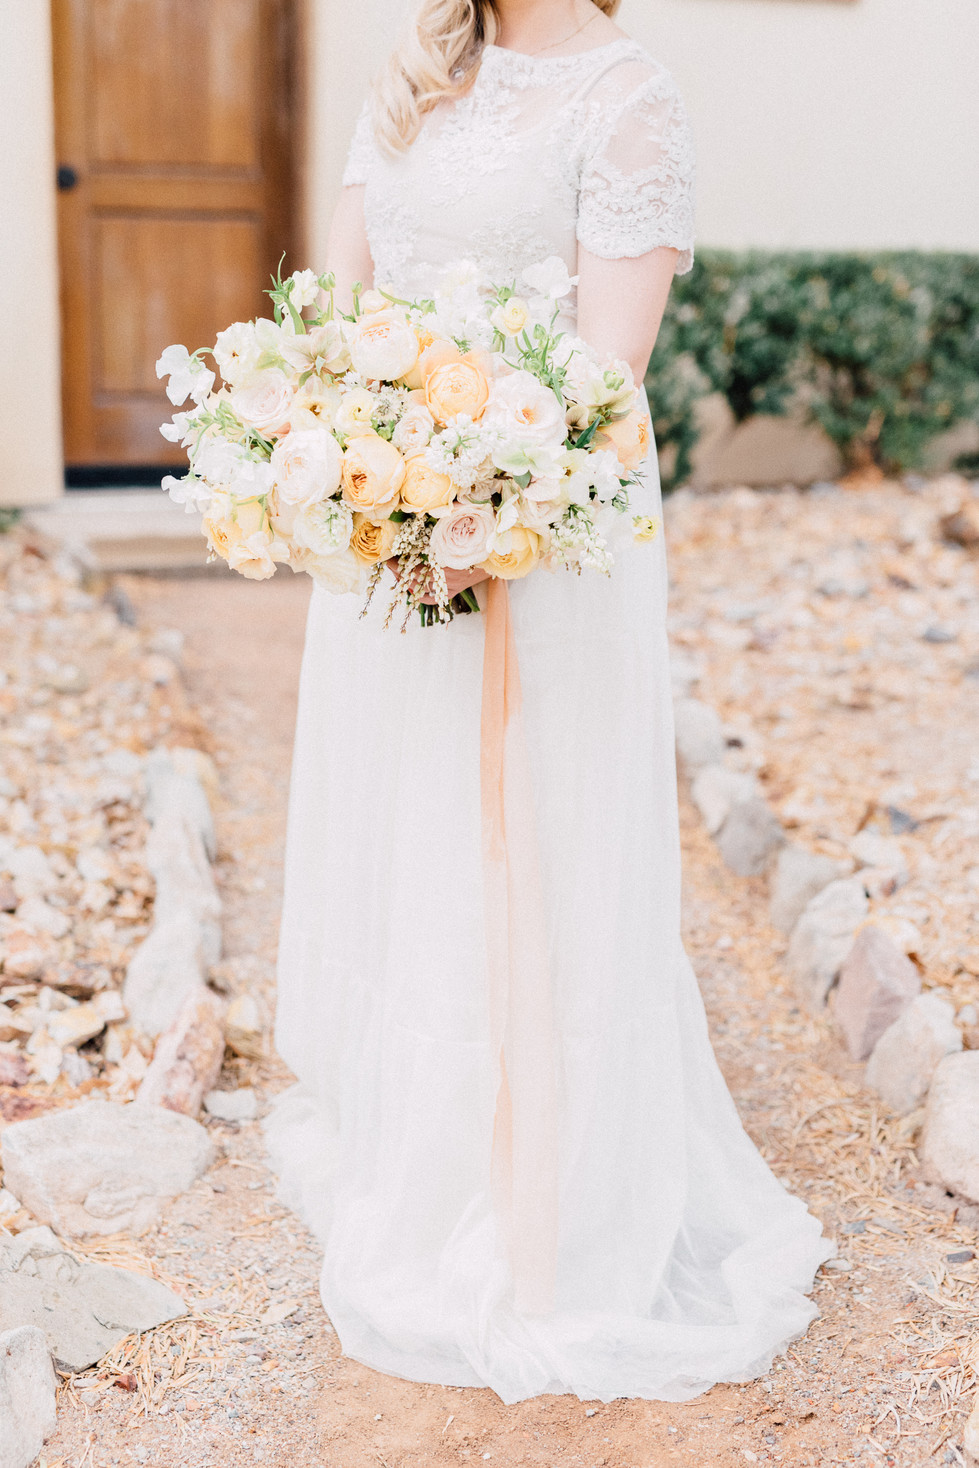 Soft yellow, blush and white bouquet, tied with silk ribbons. Photo: Kristen Joy